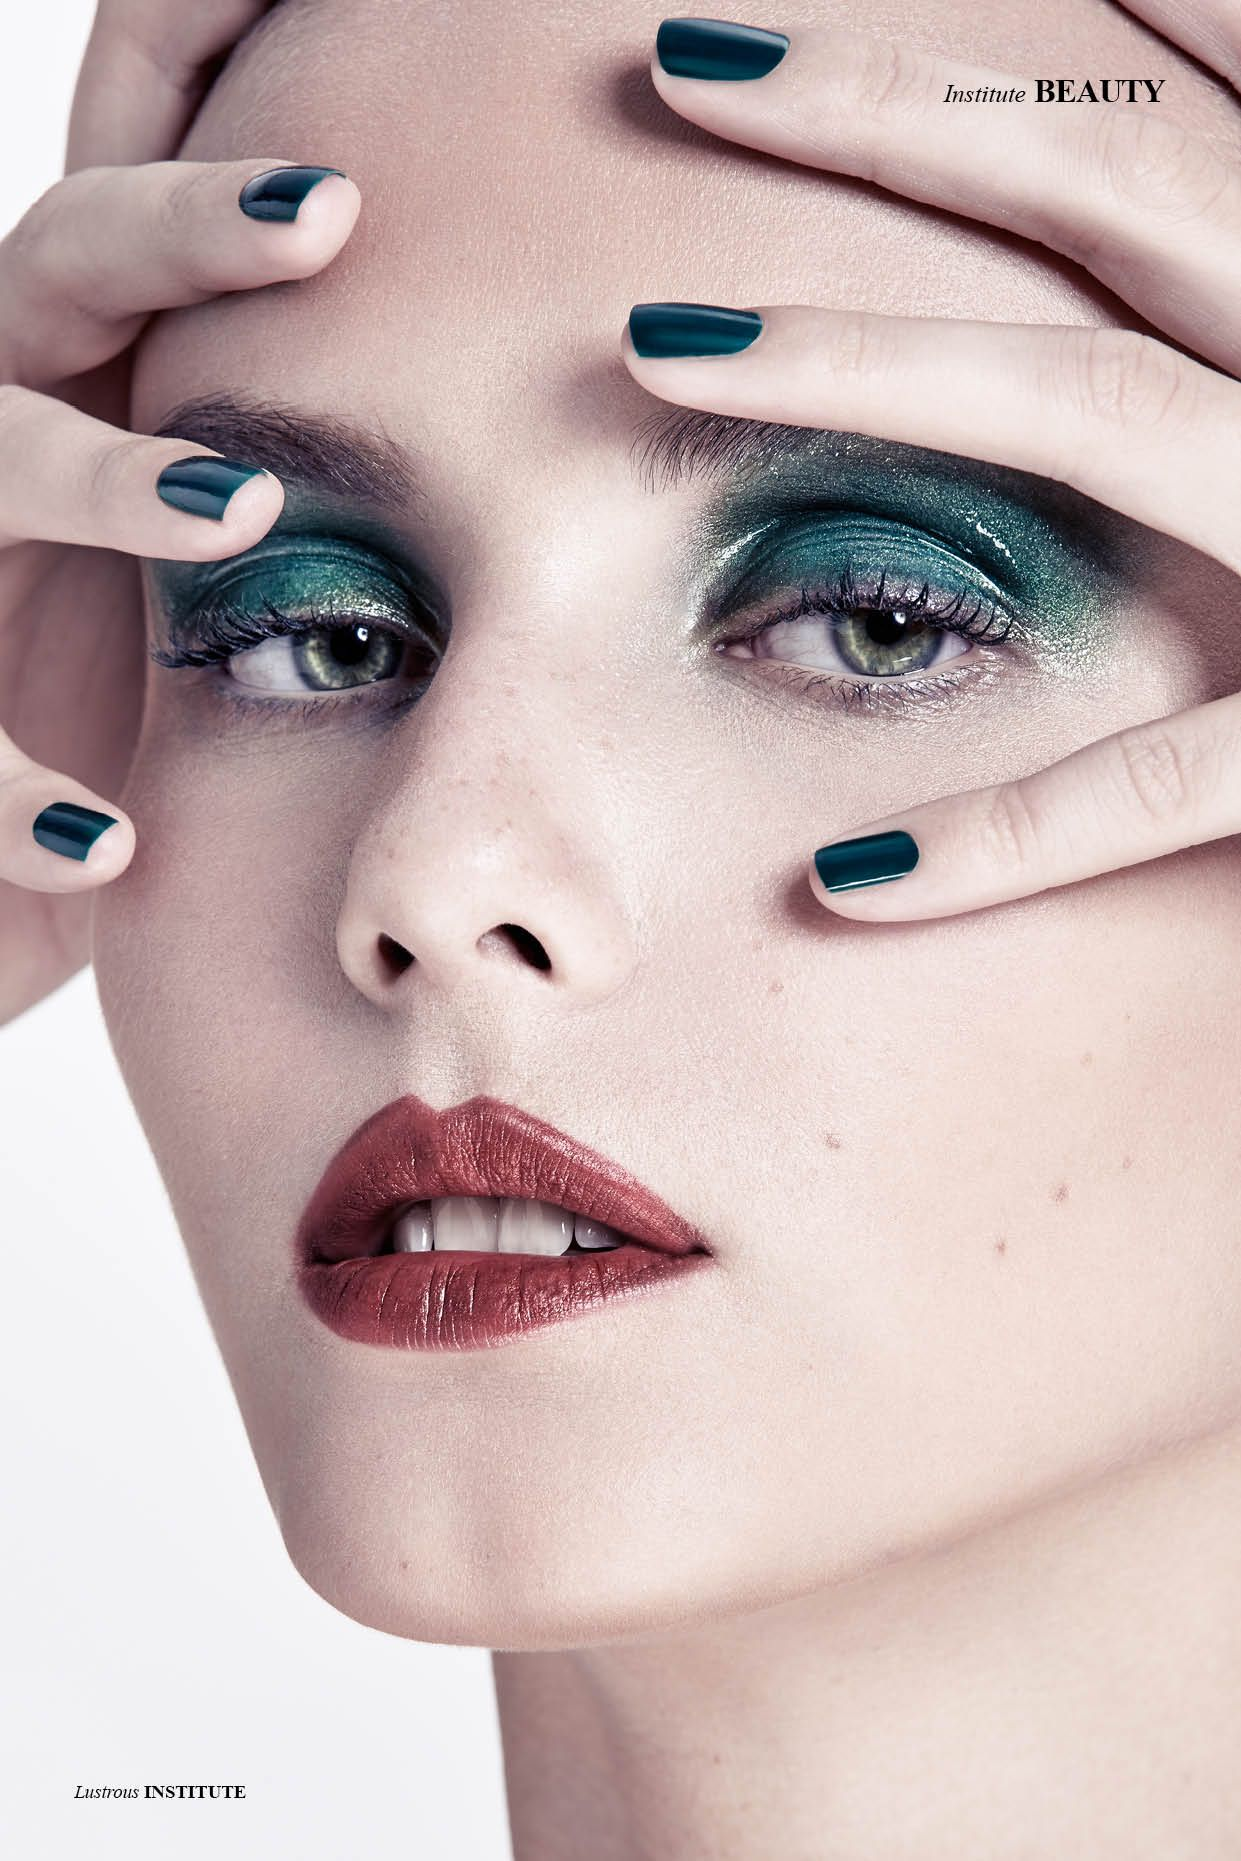 Lustrous - Make-up Artist & Nails Sharbel Hasbany Photographed by Fouad Tadros Model Miriama Chmurova